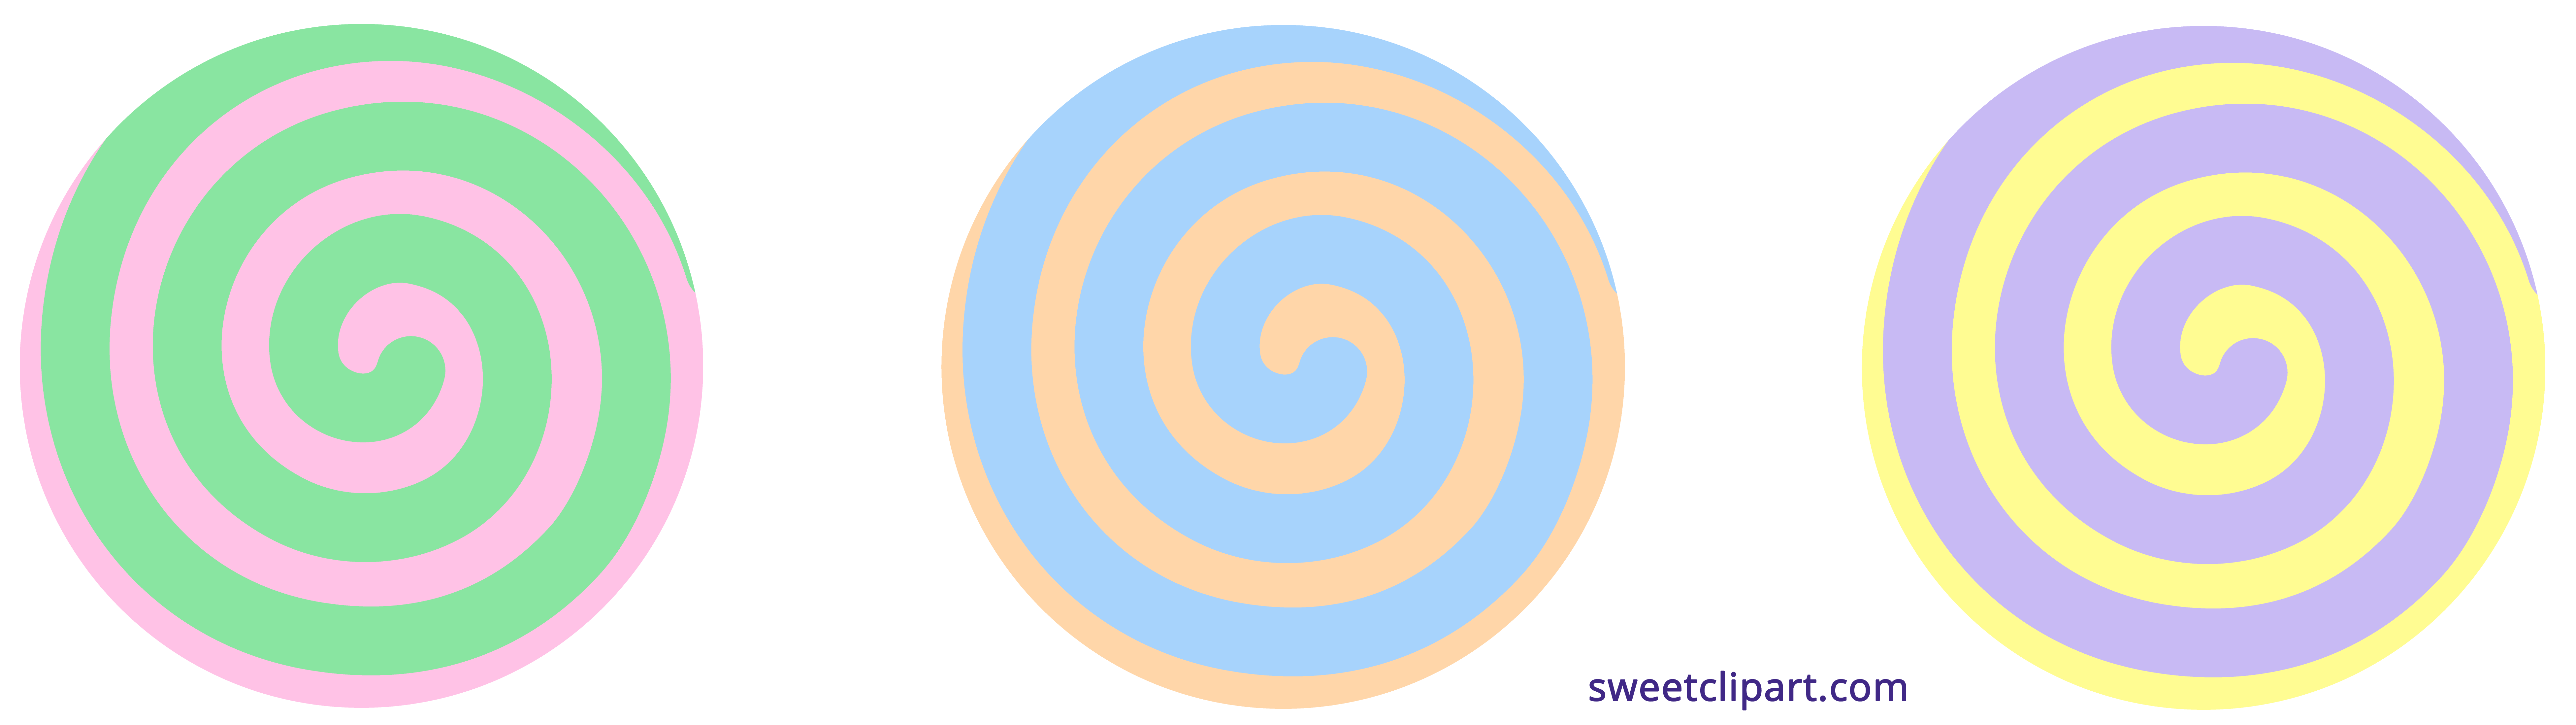 Post it clipart pastel. Spiral candy sweet clip